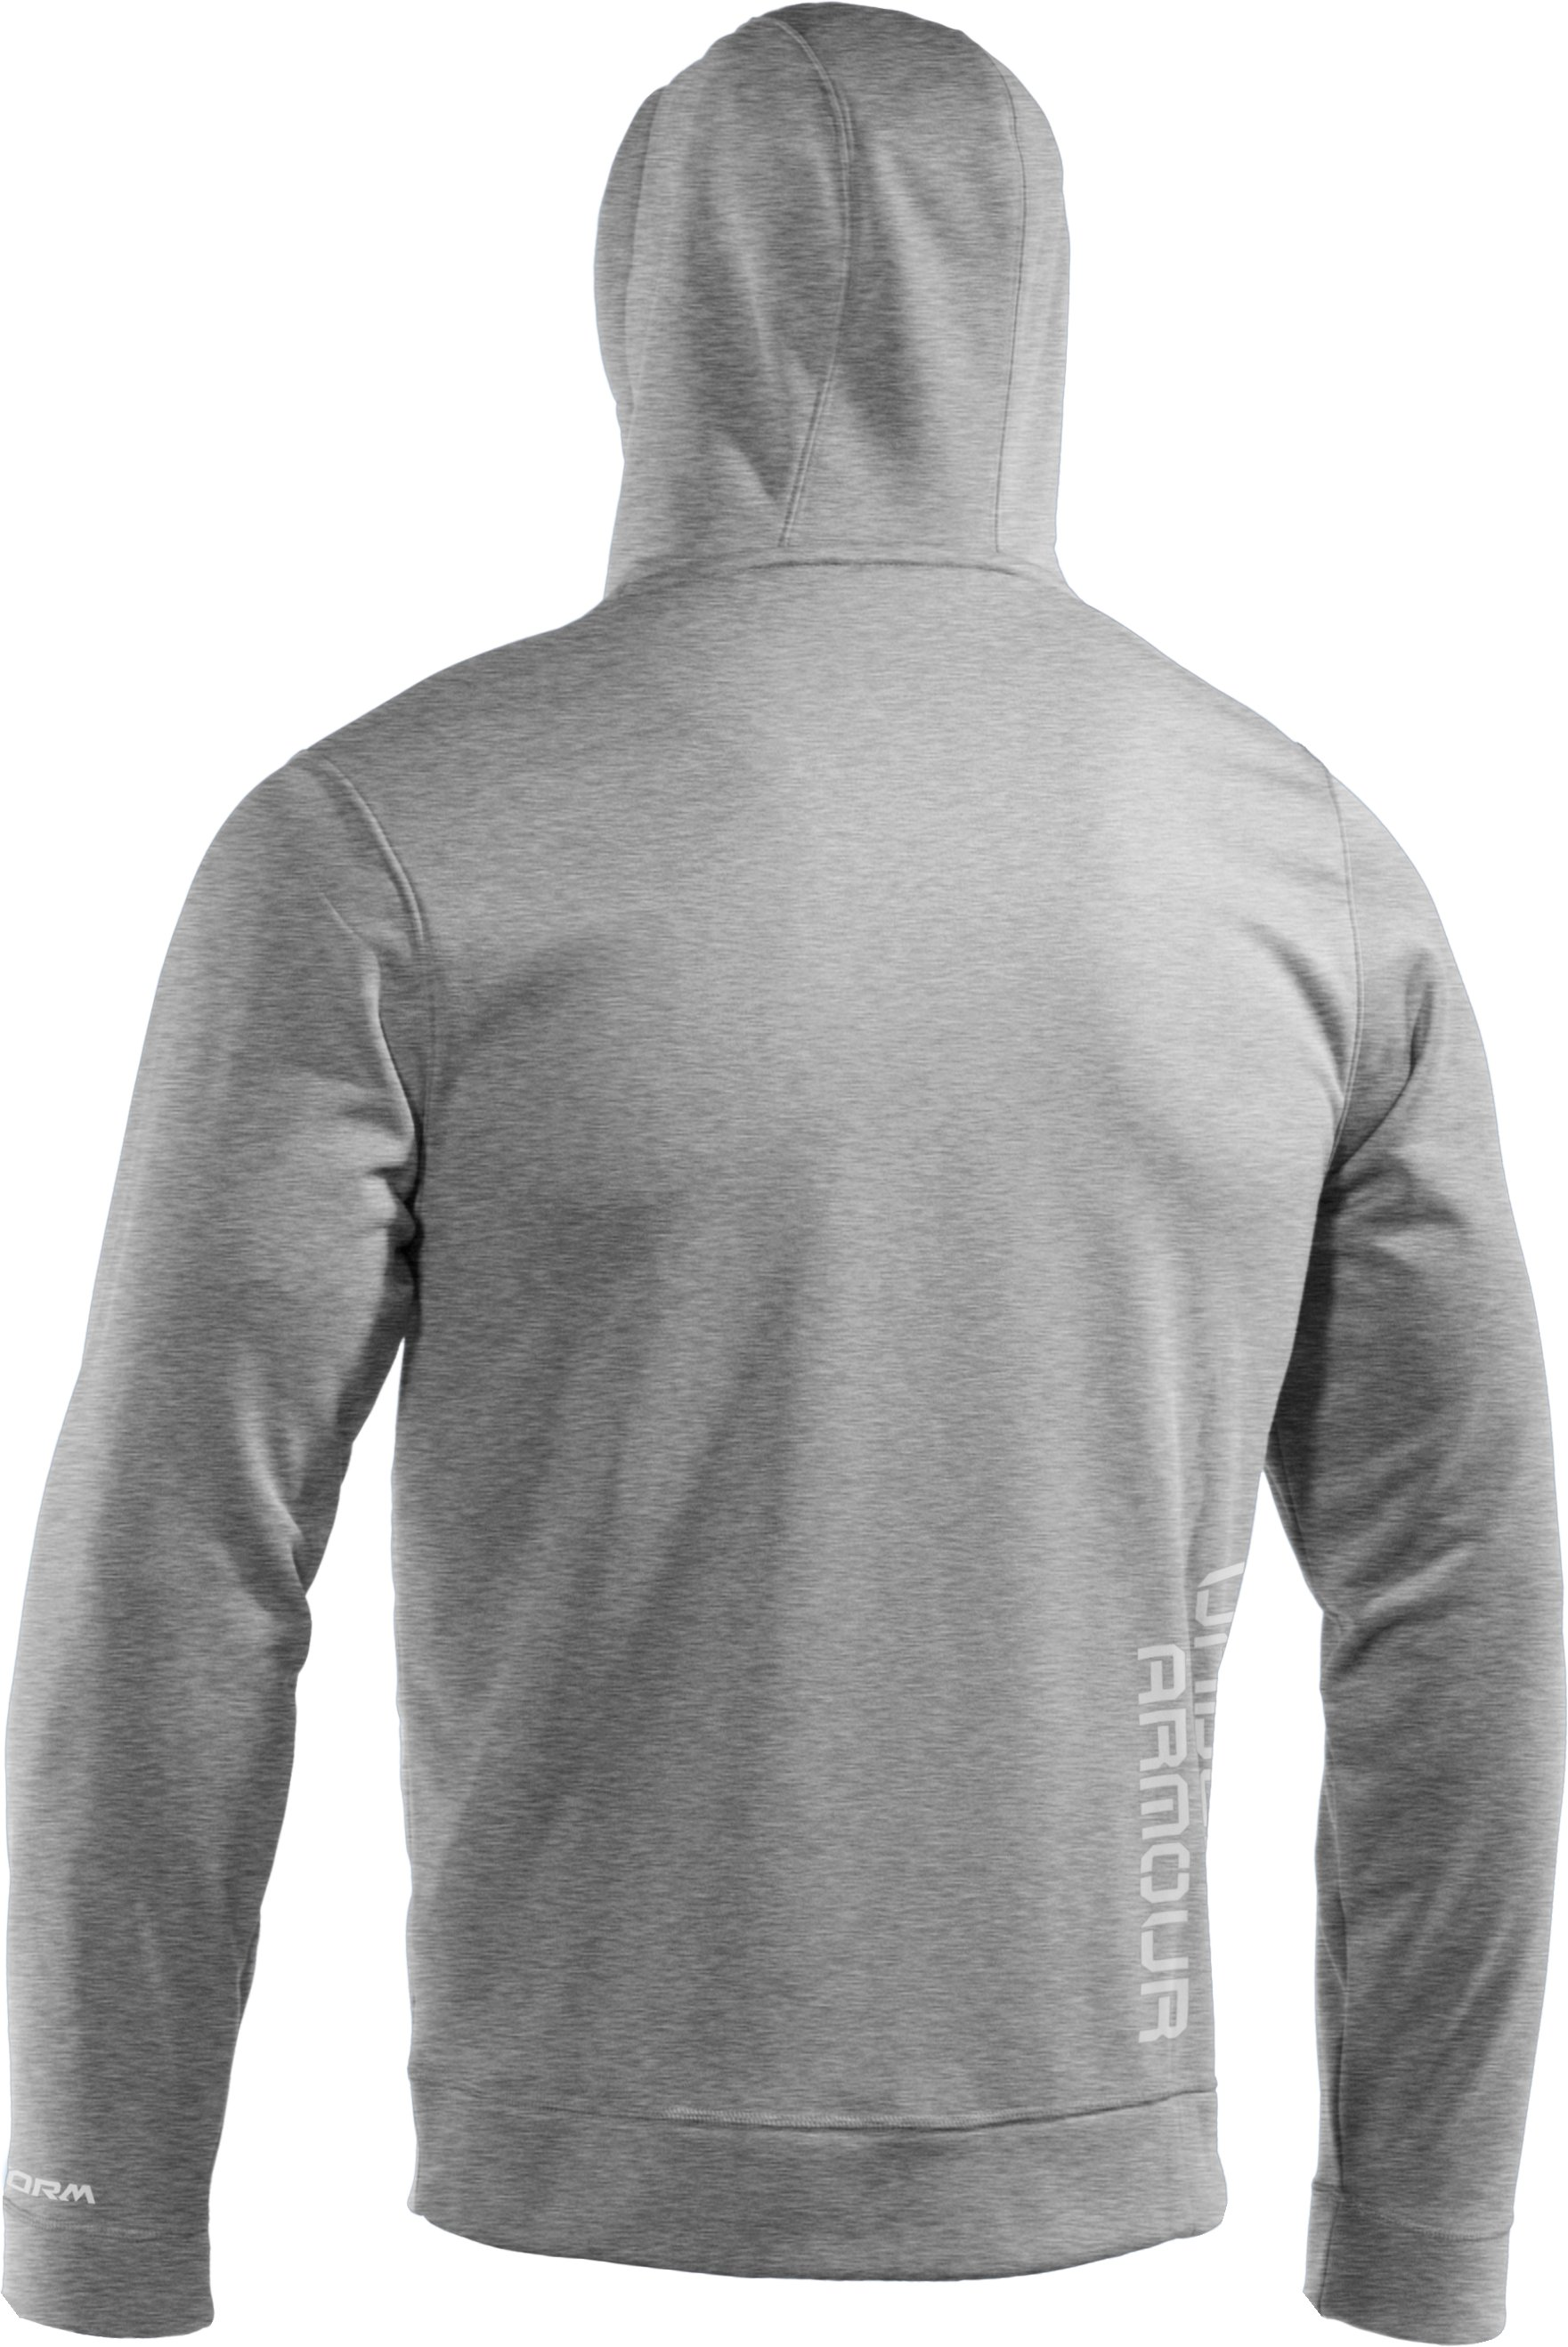 Men's Armour® Fleece Storm Big Logo Hoodie, True Gray Heather